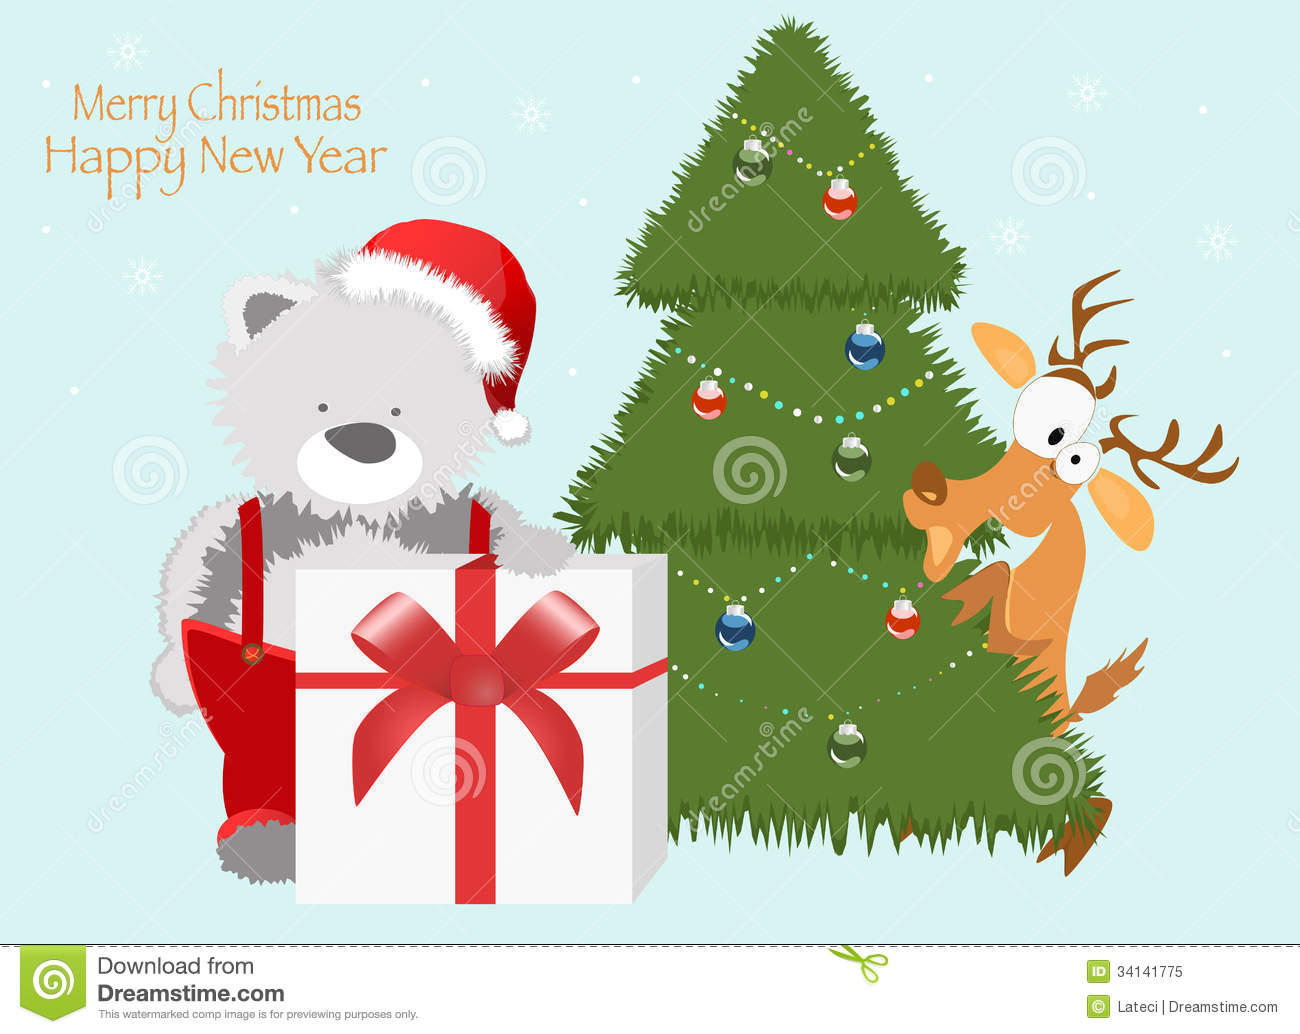 50 Beautiful Merry Christmas And Happy New Year Pictures: Red Baby Winter Background With Funny Young Teddy Royalty